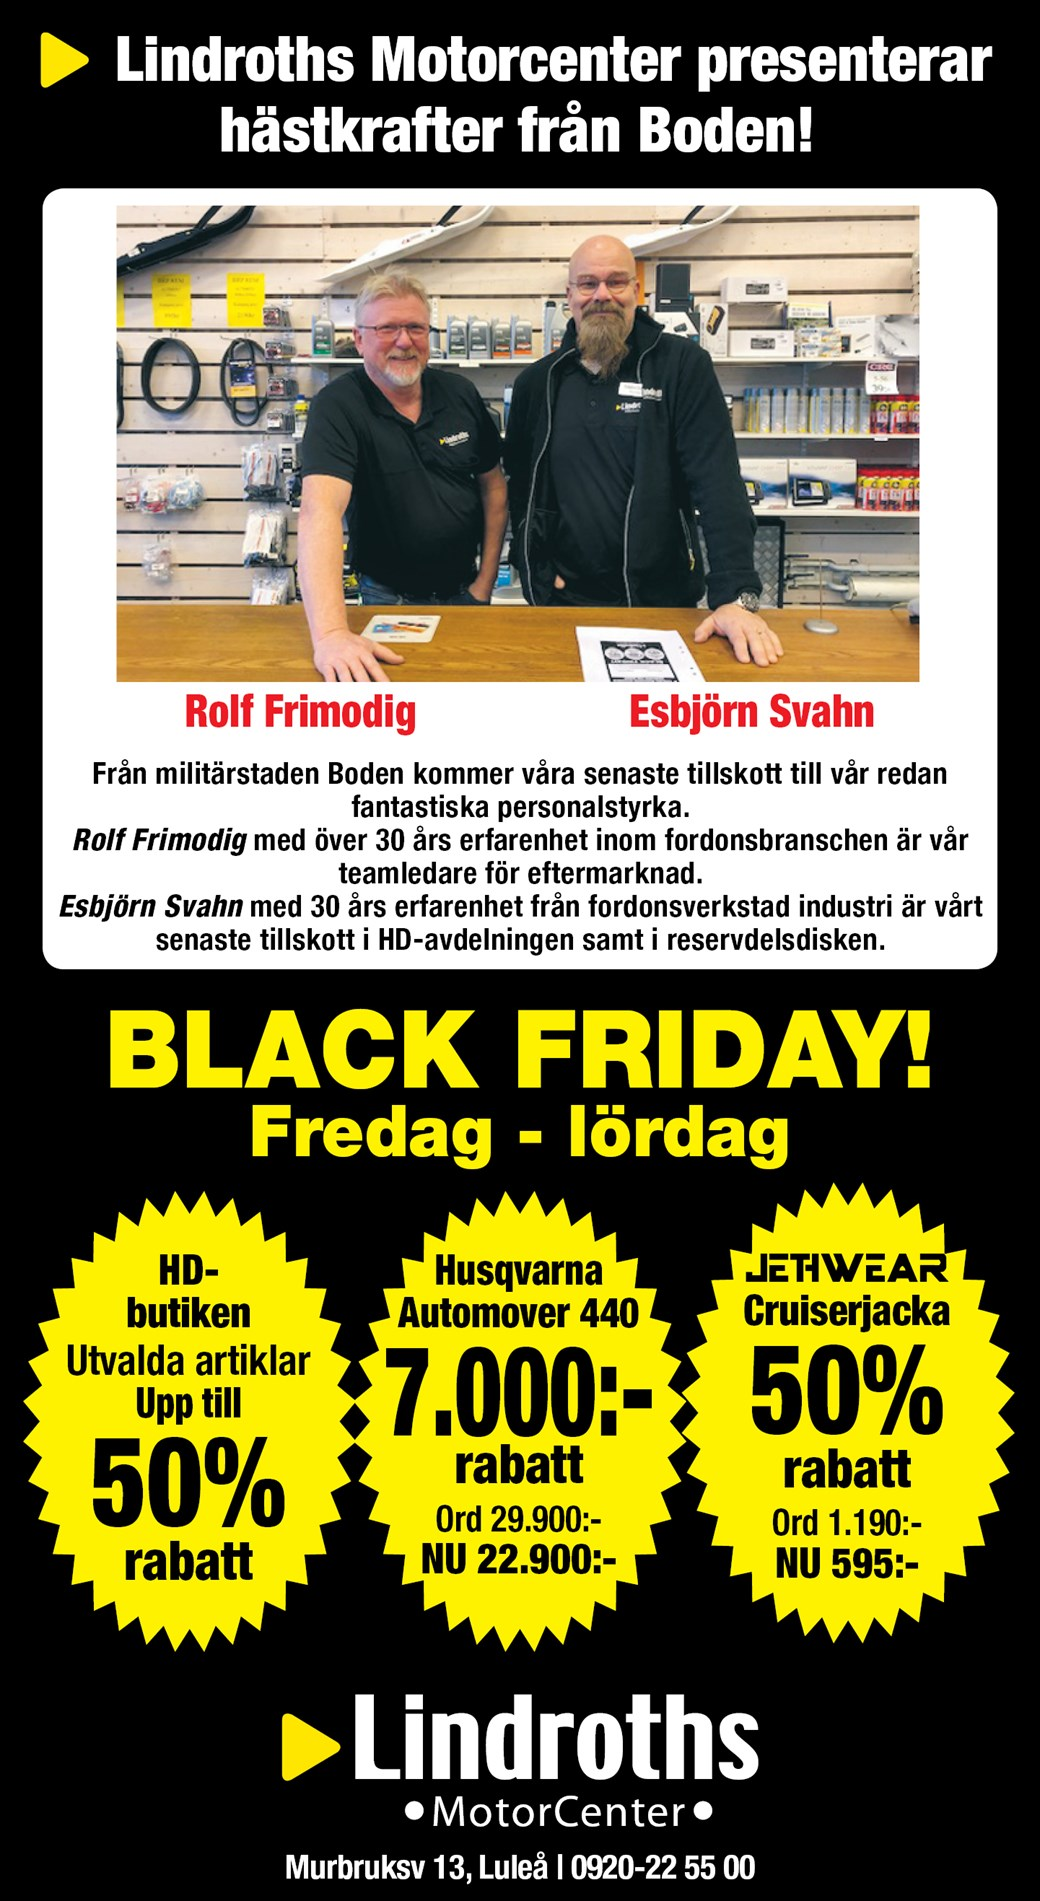 Black Friday! Fre-Lör